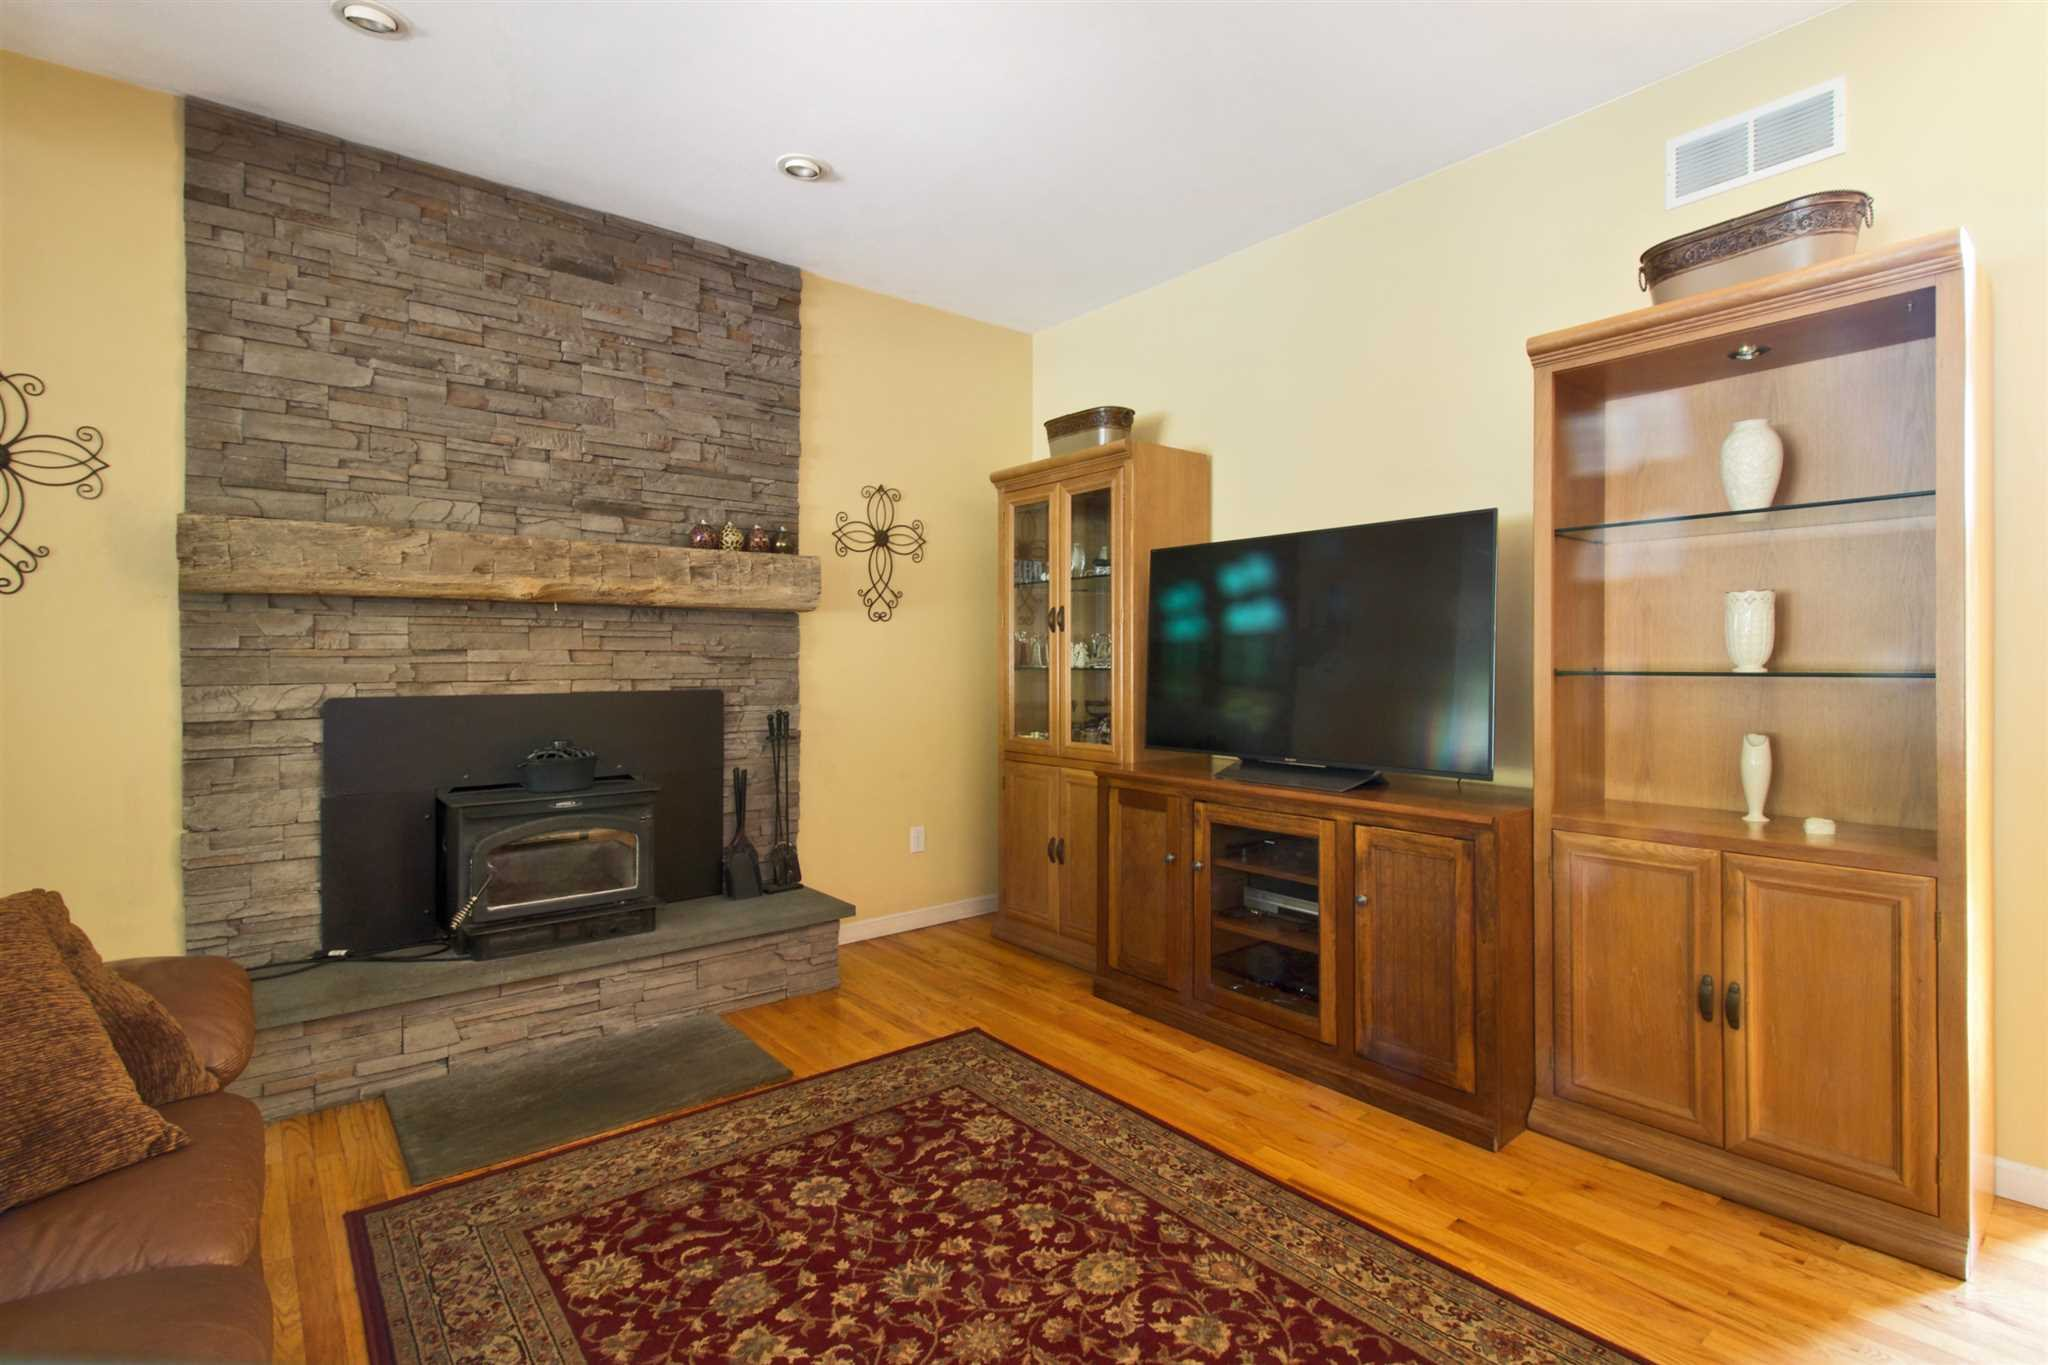 Additional photo for property listing at 55 GUINNESS 55 GUINNESS East Fishkill, New York 12533 United States